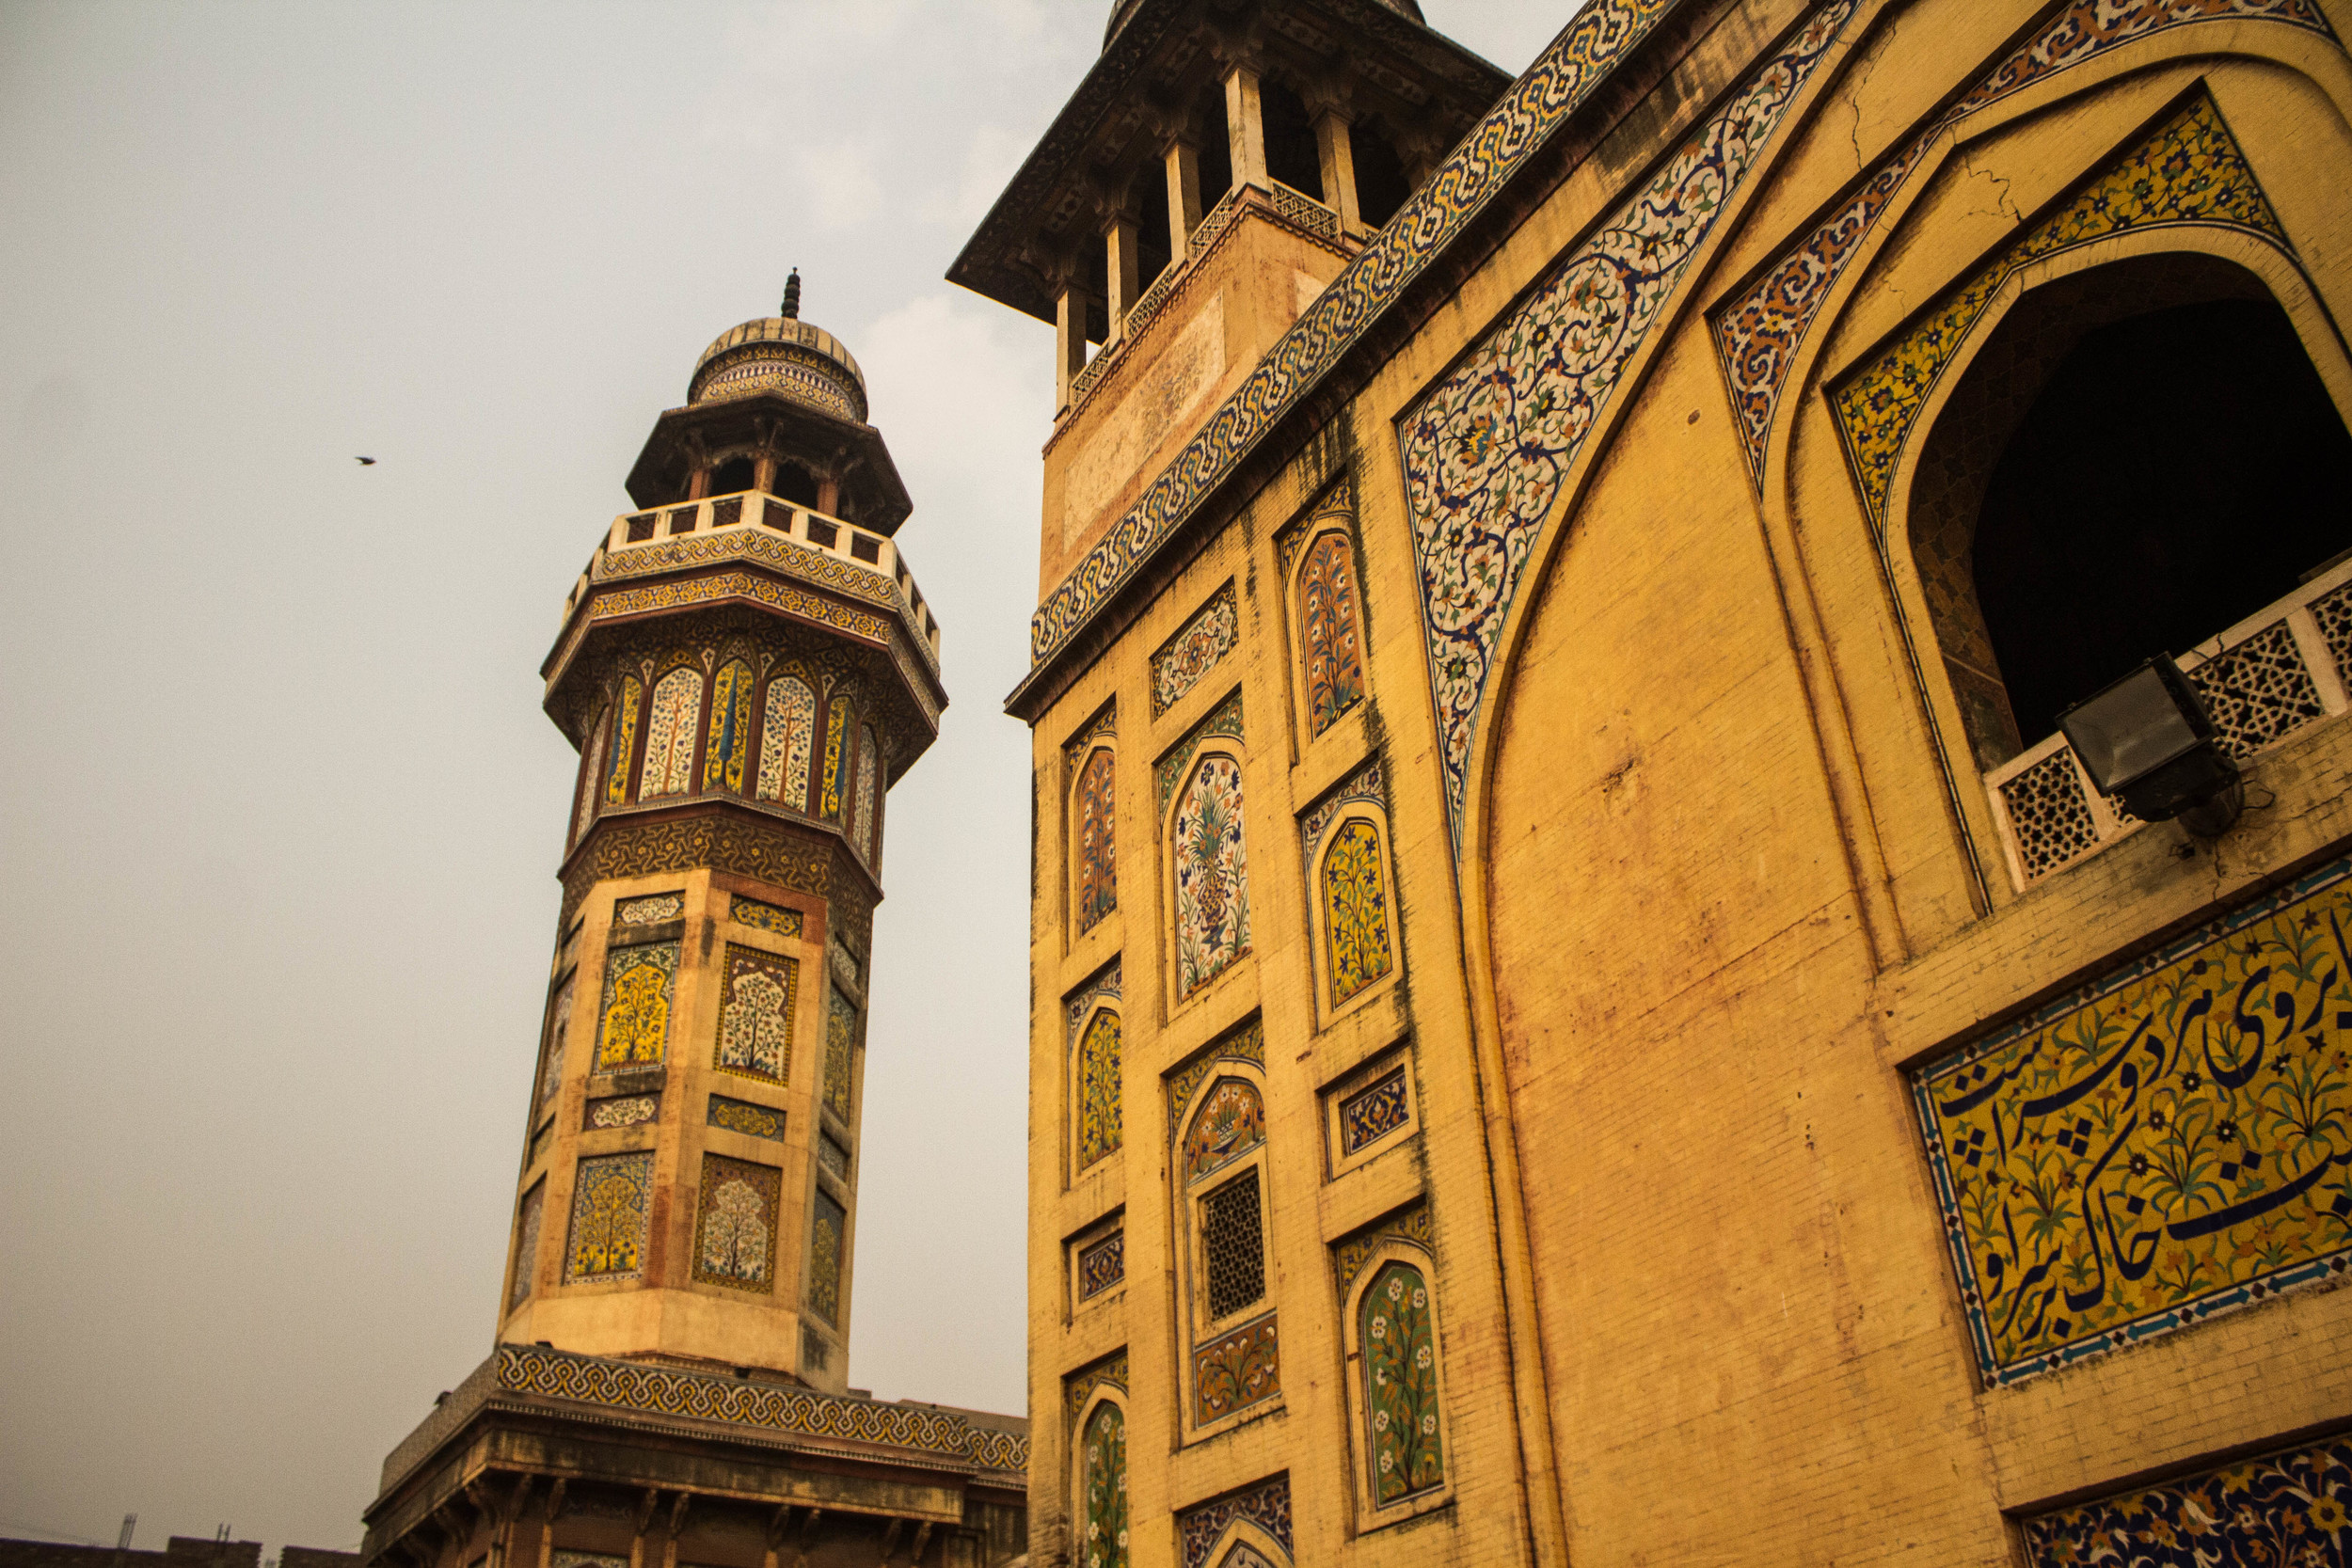 Lesser known than the Badshahi Masjid, the Wazir Khan Masjid inside Old Lahore and accessible via the Delhi gate was built under orders from the fifth Mughal Emperor Shah Jehan.